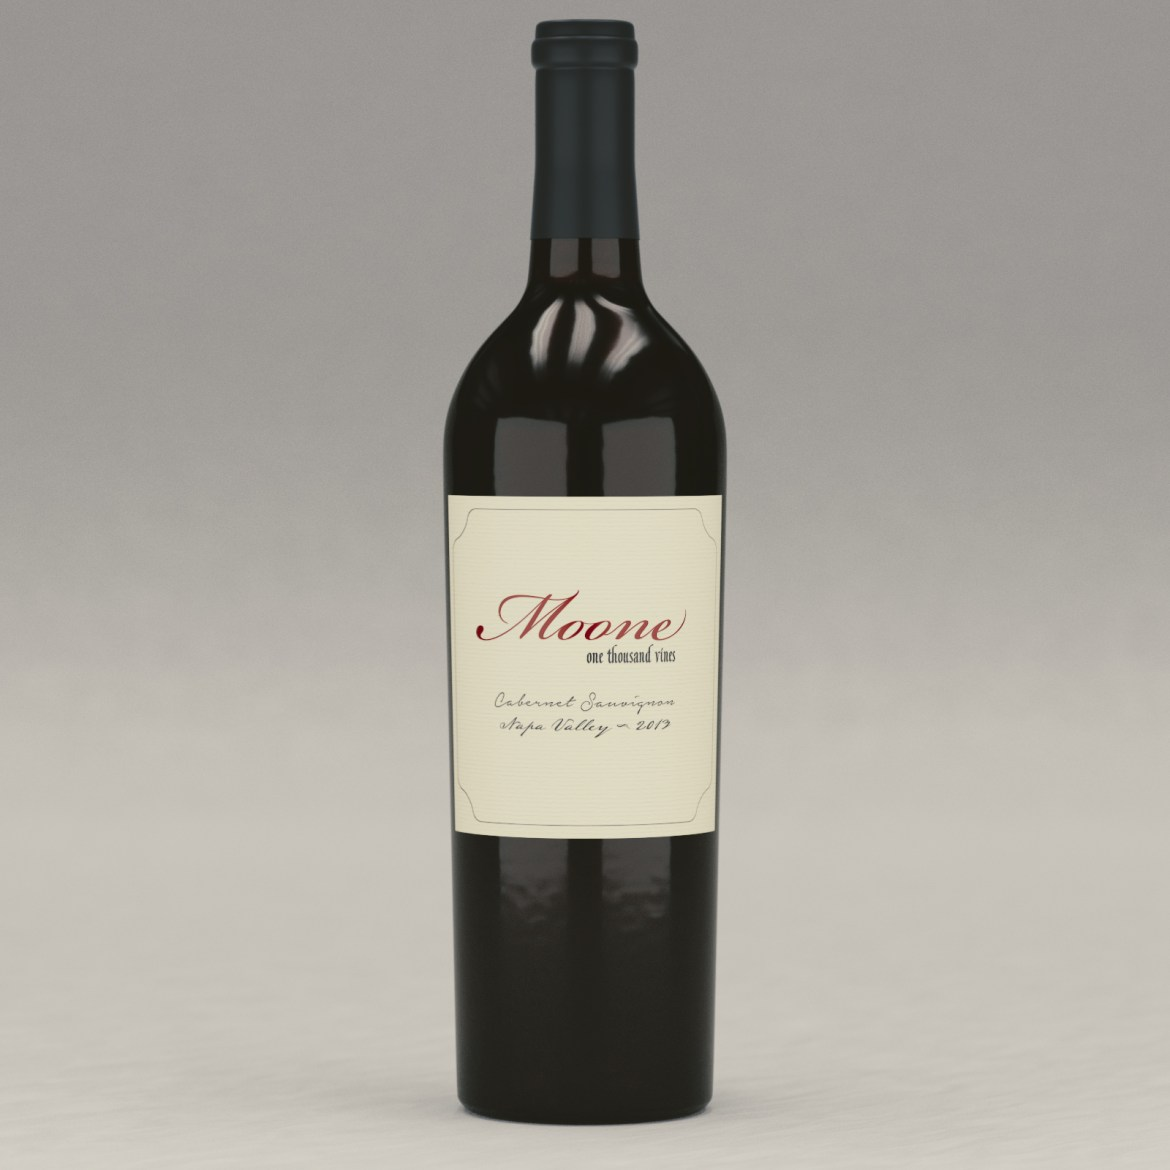 Moone: One Thousand Vines Cabernet